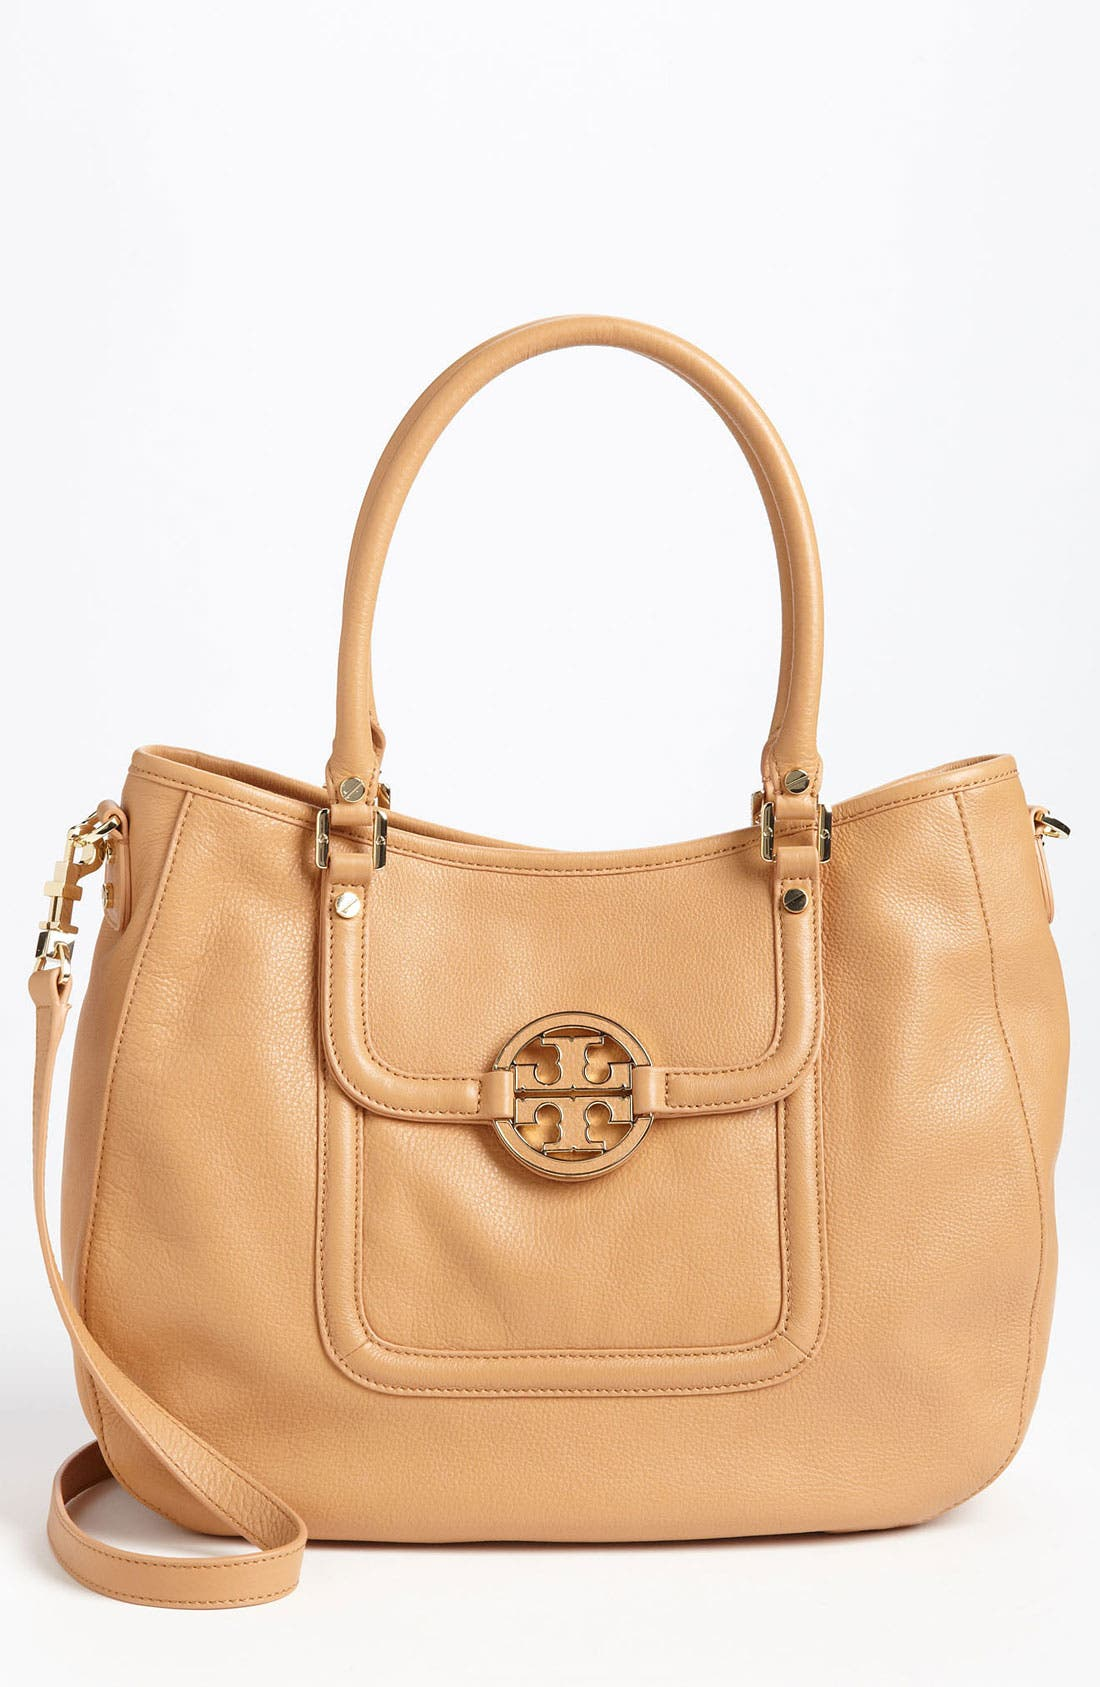 Main Image - Tory Burch 'Amanda' Leather Hobo